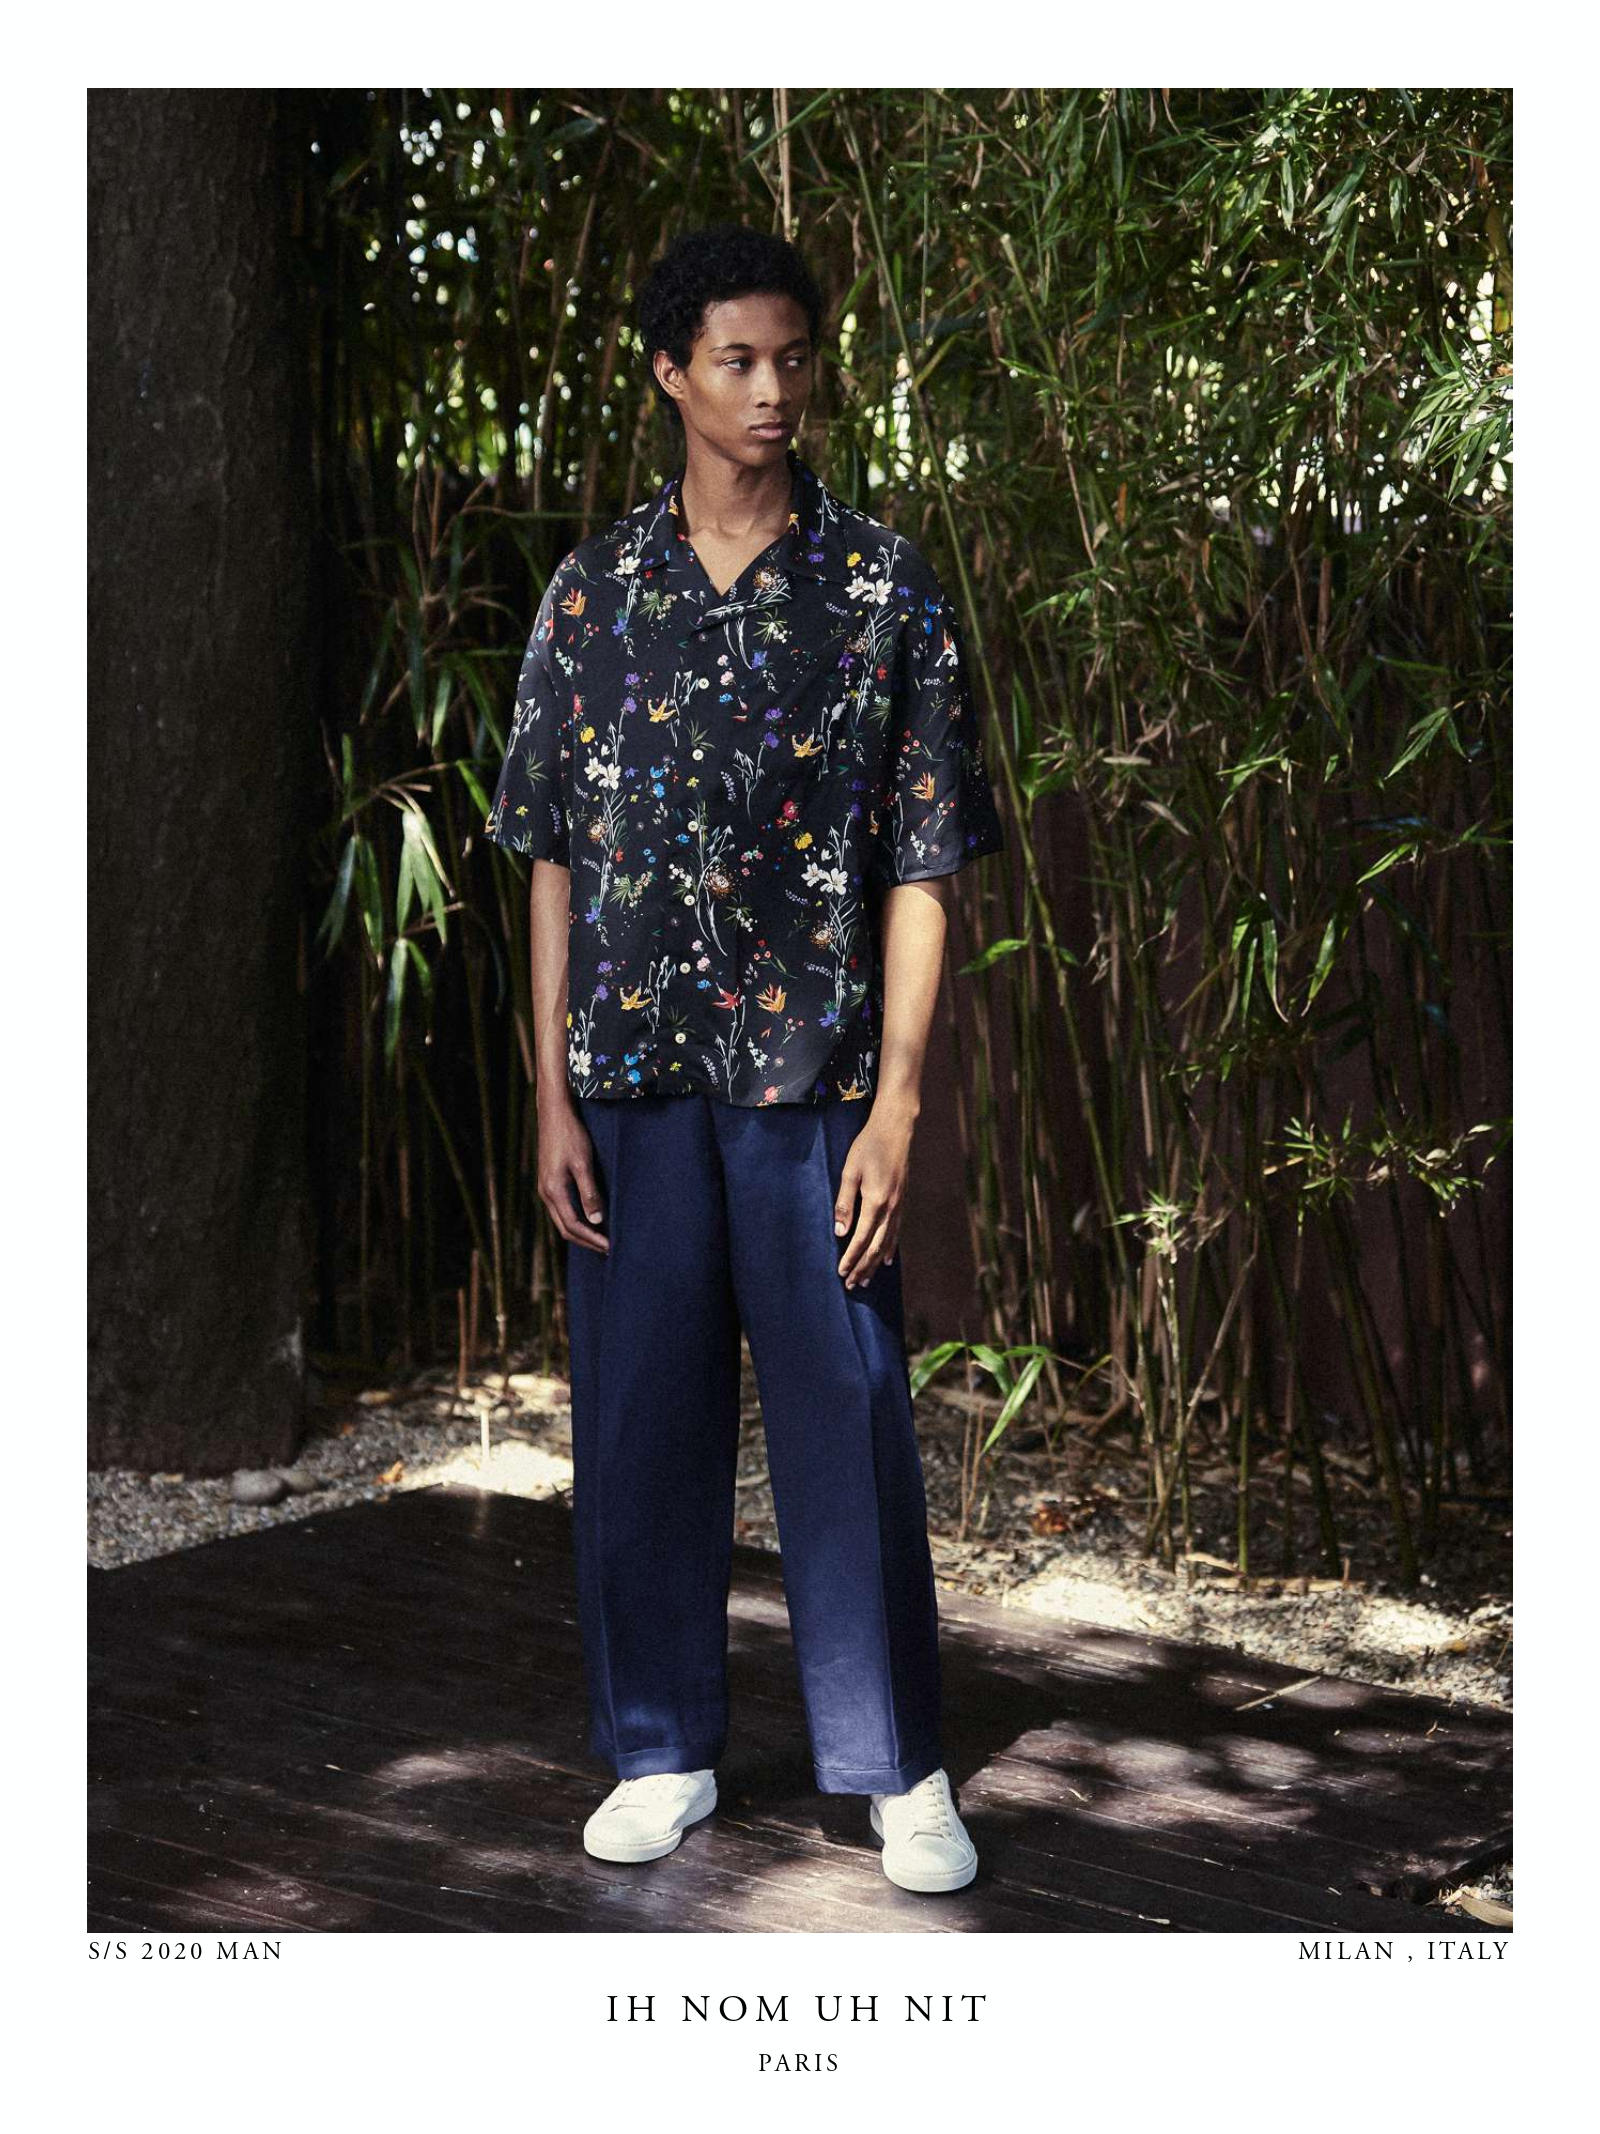 S_S 2020 MAN LOOK BOOK _pages-to-jpg-0023.jpg